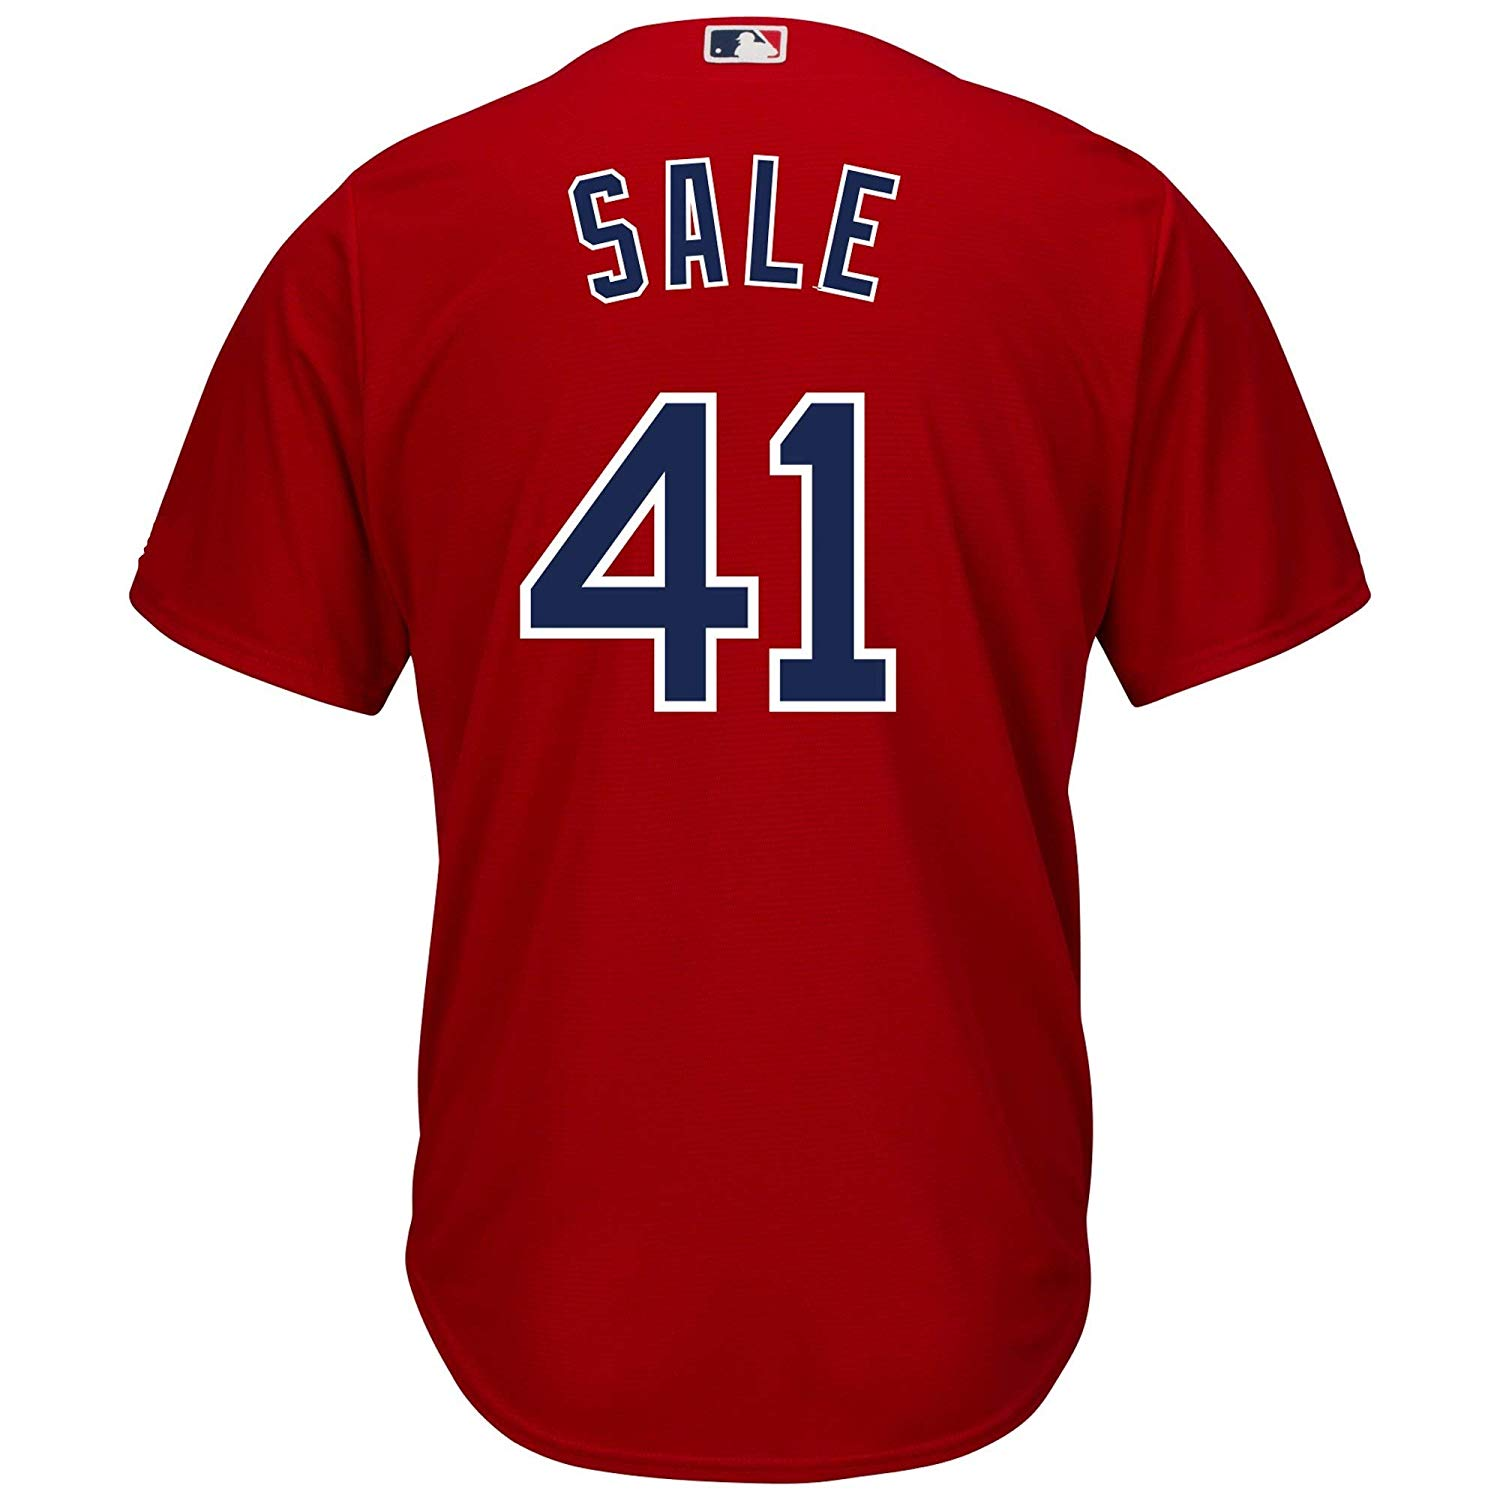 premium selection 42b43 0ca20 Cheap Green Red Sox Jersey, find Green Red Sox Jersey deals ...